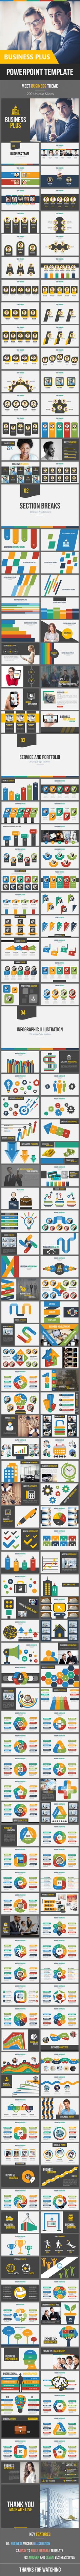 BusinessPlus - Multipurpose Template - Business PowerPoint Templates